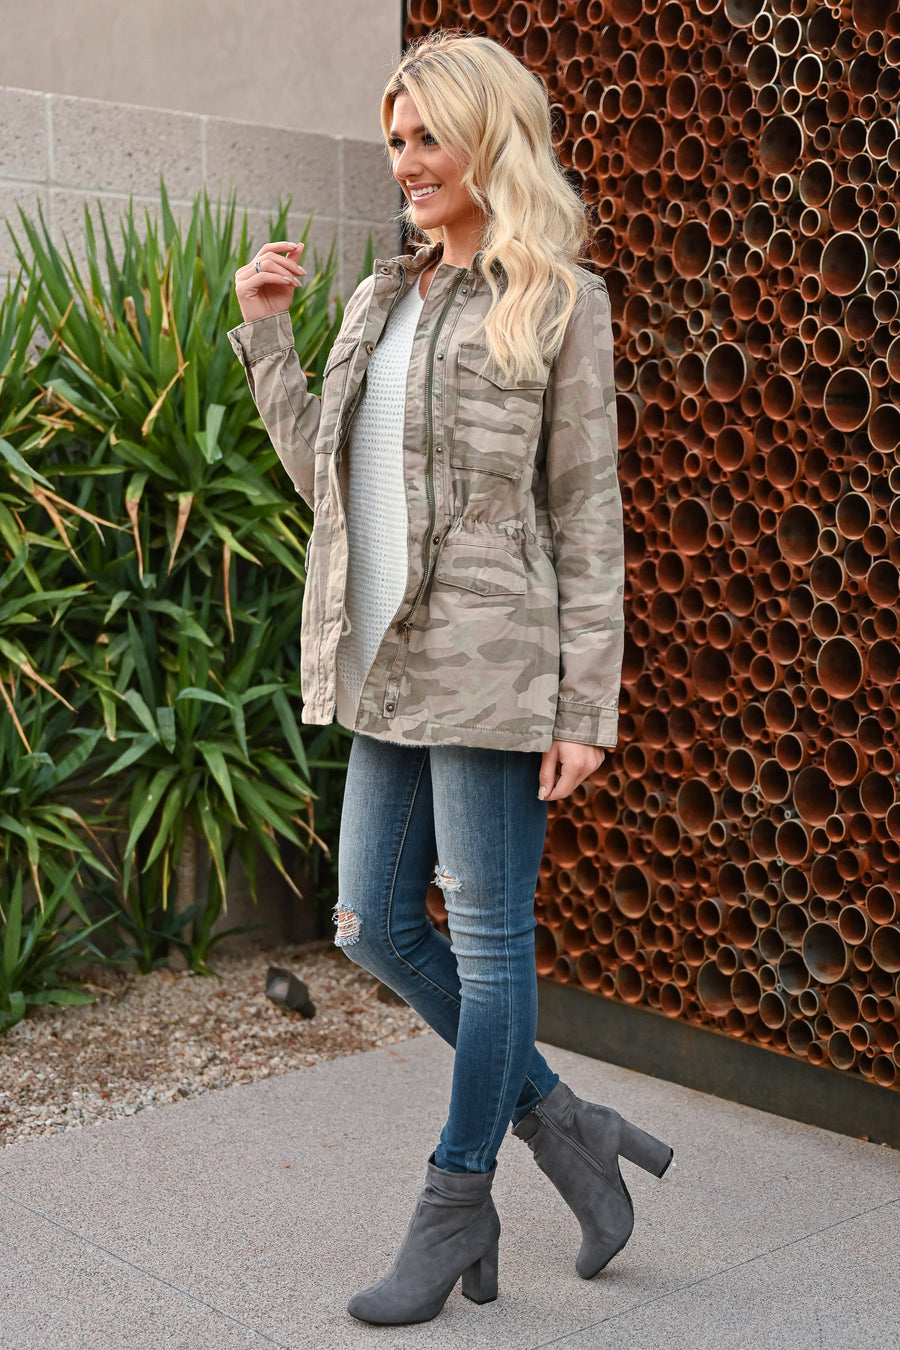 THREAD & SUPPLY Mountain Town Cargo Jacket - Dusty Camo womens trendy long sleeve sherpa lined collared camo jacket closet candy front